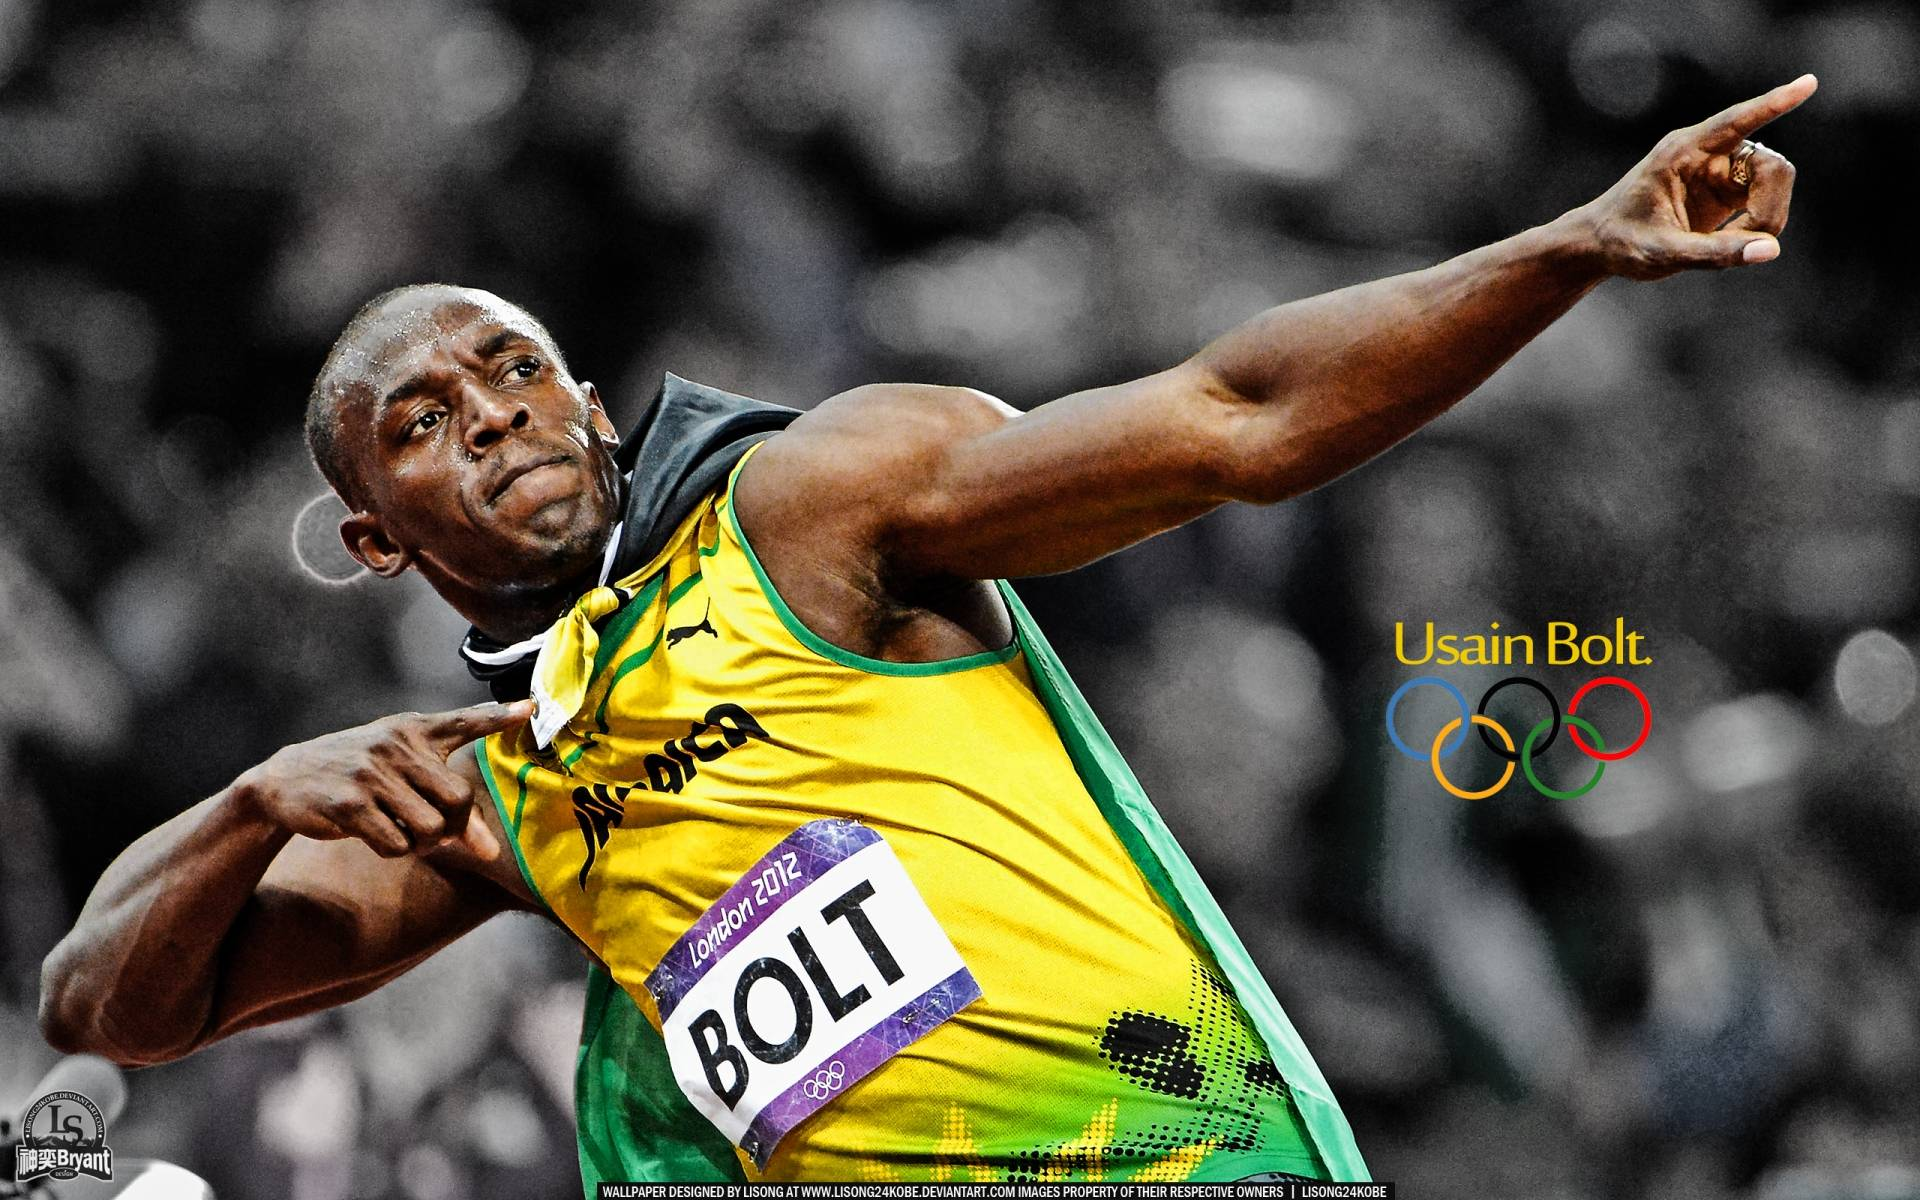 10 Usain Bolt Wallpapers | Usain Bolt Backgrounds